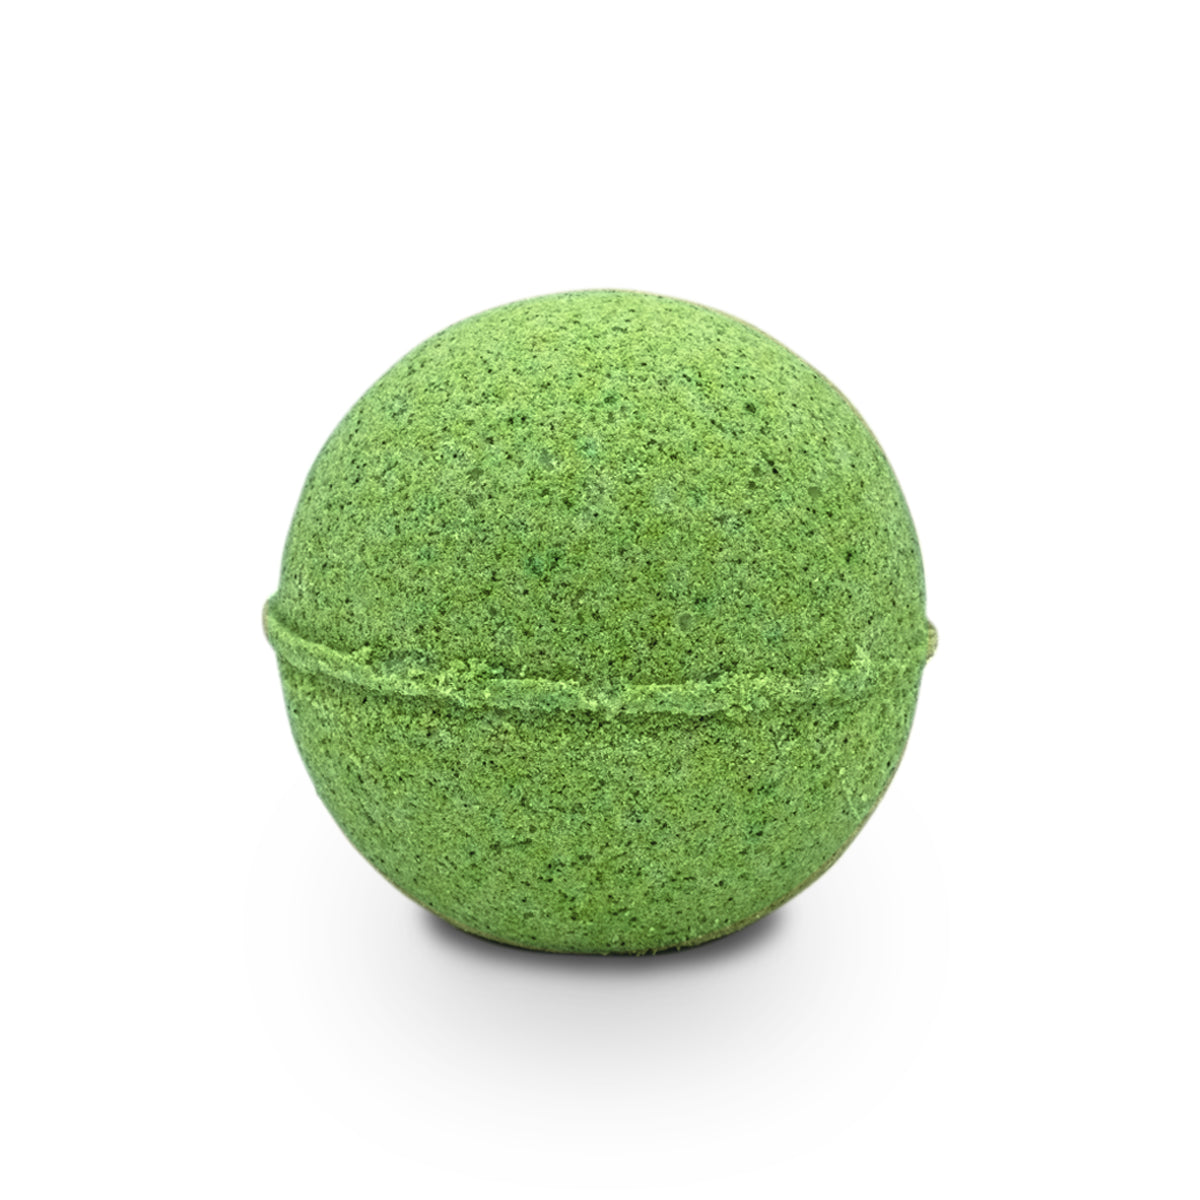 Tonka & Vetiver 100mg CBD Bath Bomb